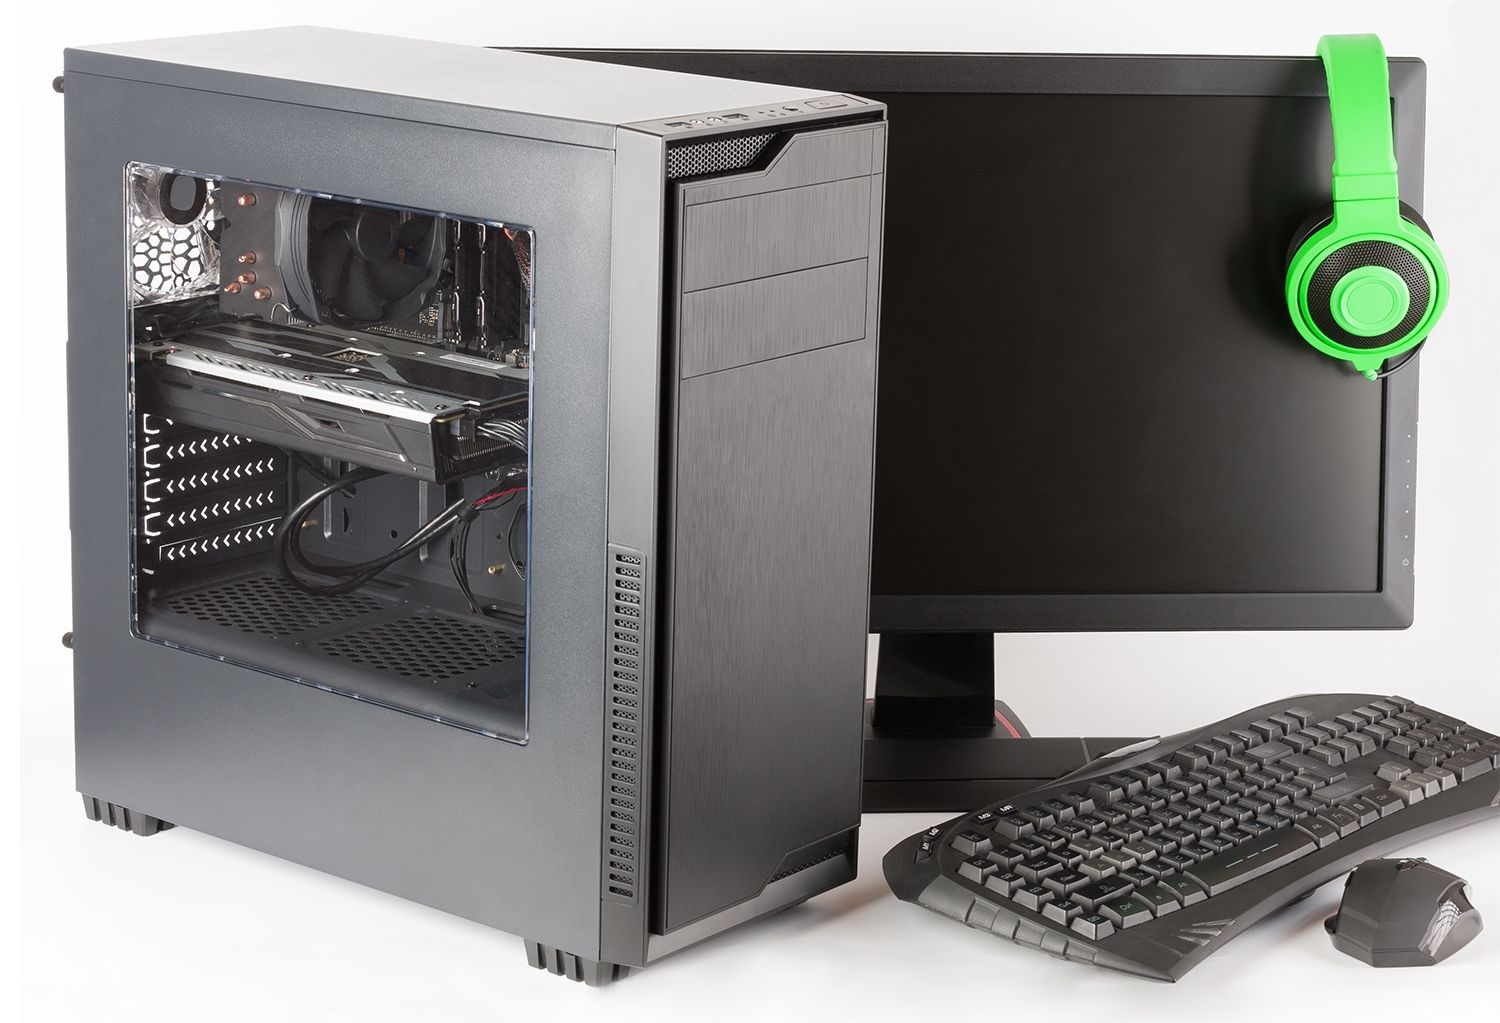 Gaming computer with monitor, keyboard, gaming mouse and headphones